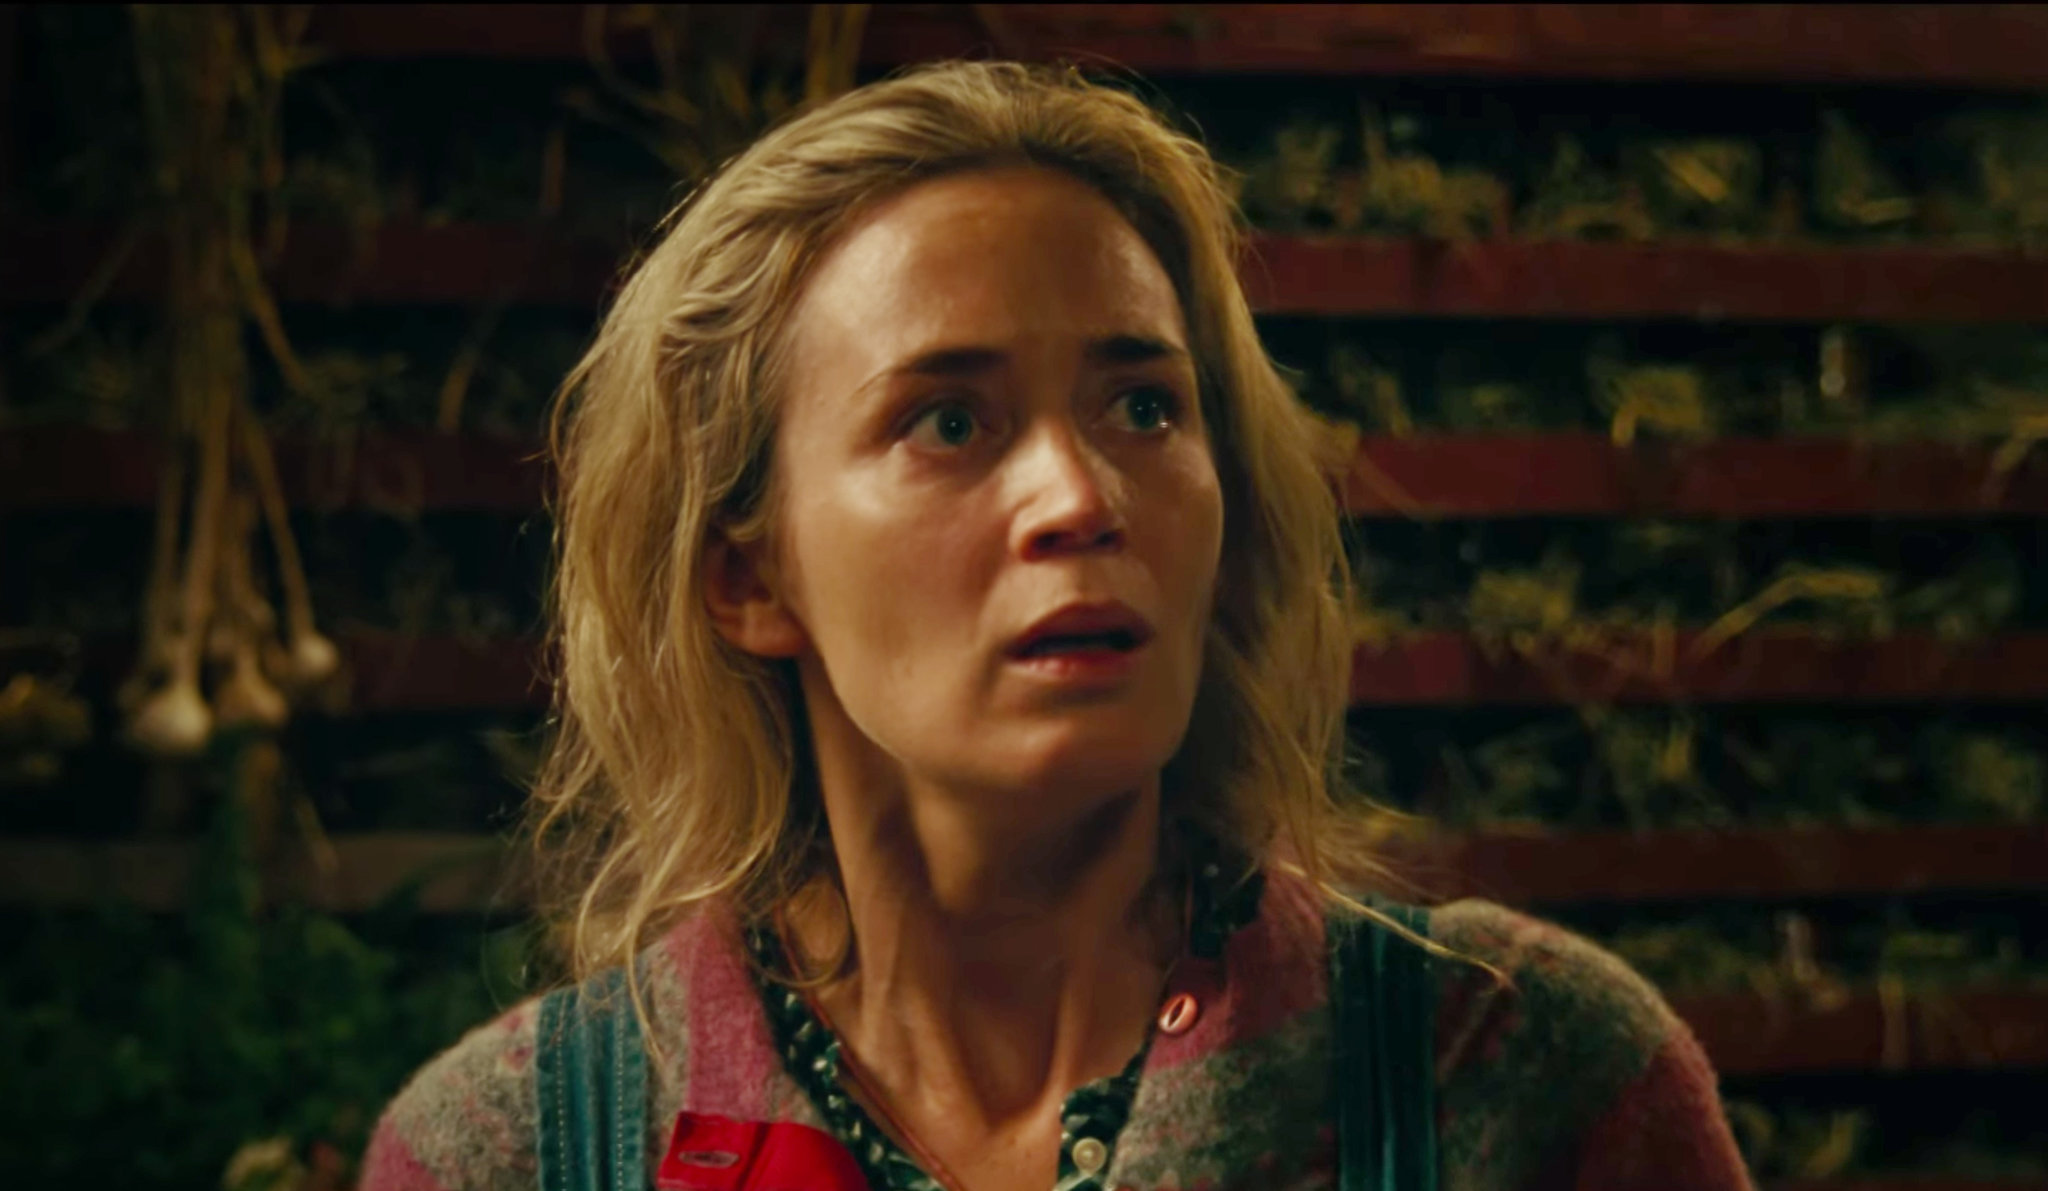 Paramount is giving us another A Quiet Place screenshot